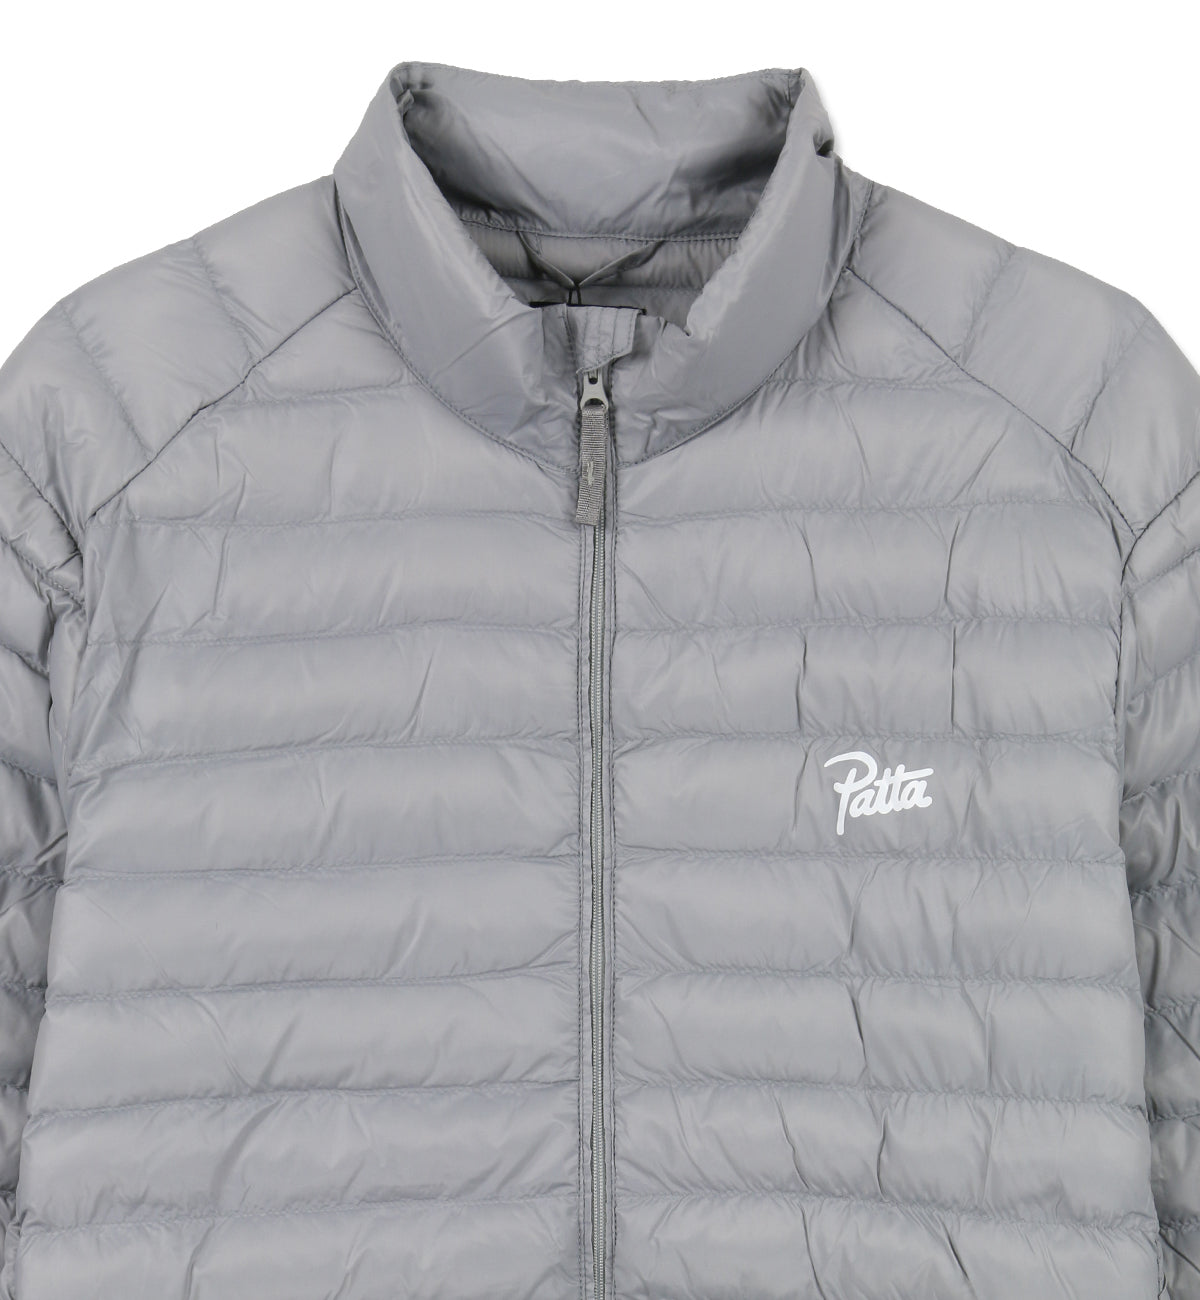 Patta Chest Logo Light Insulated Jacket